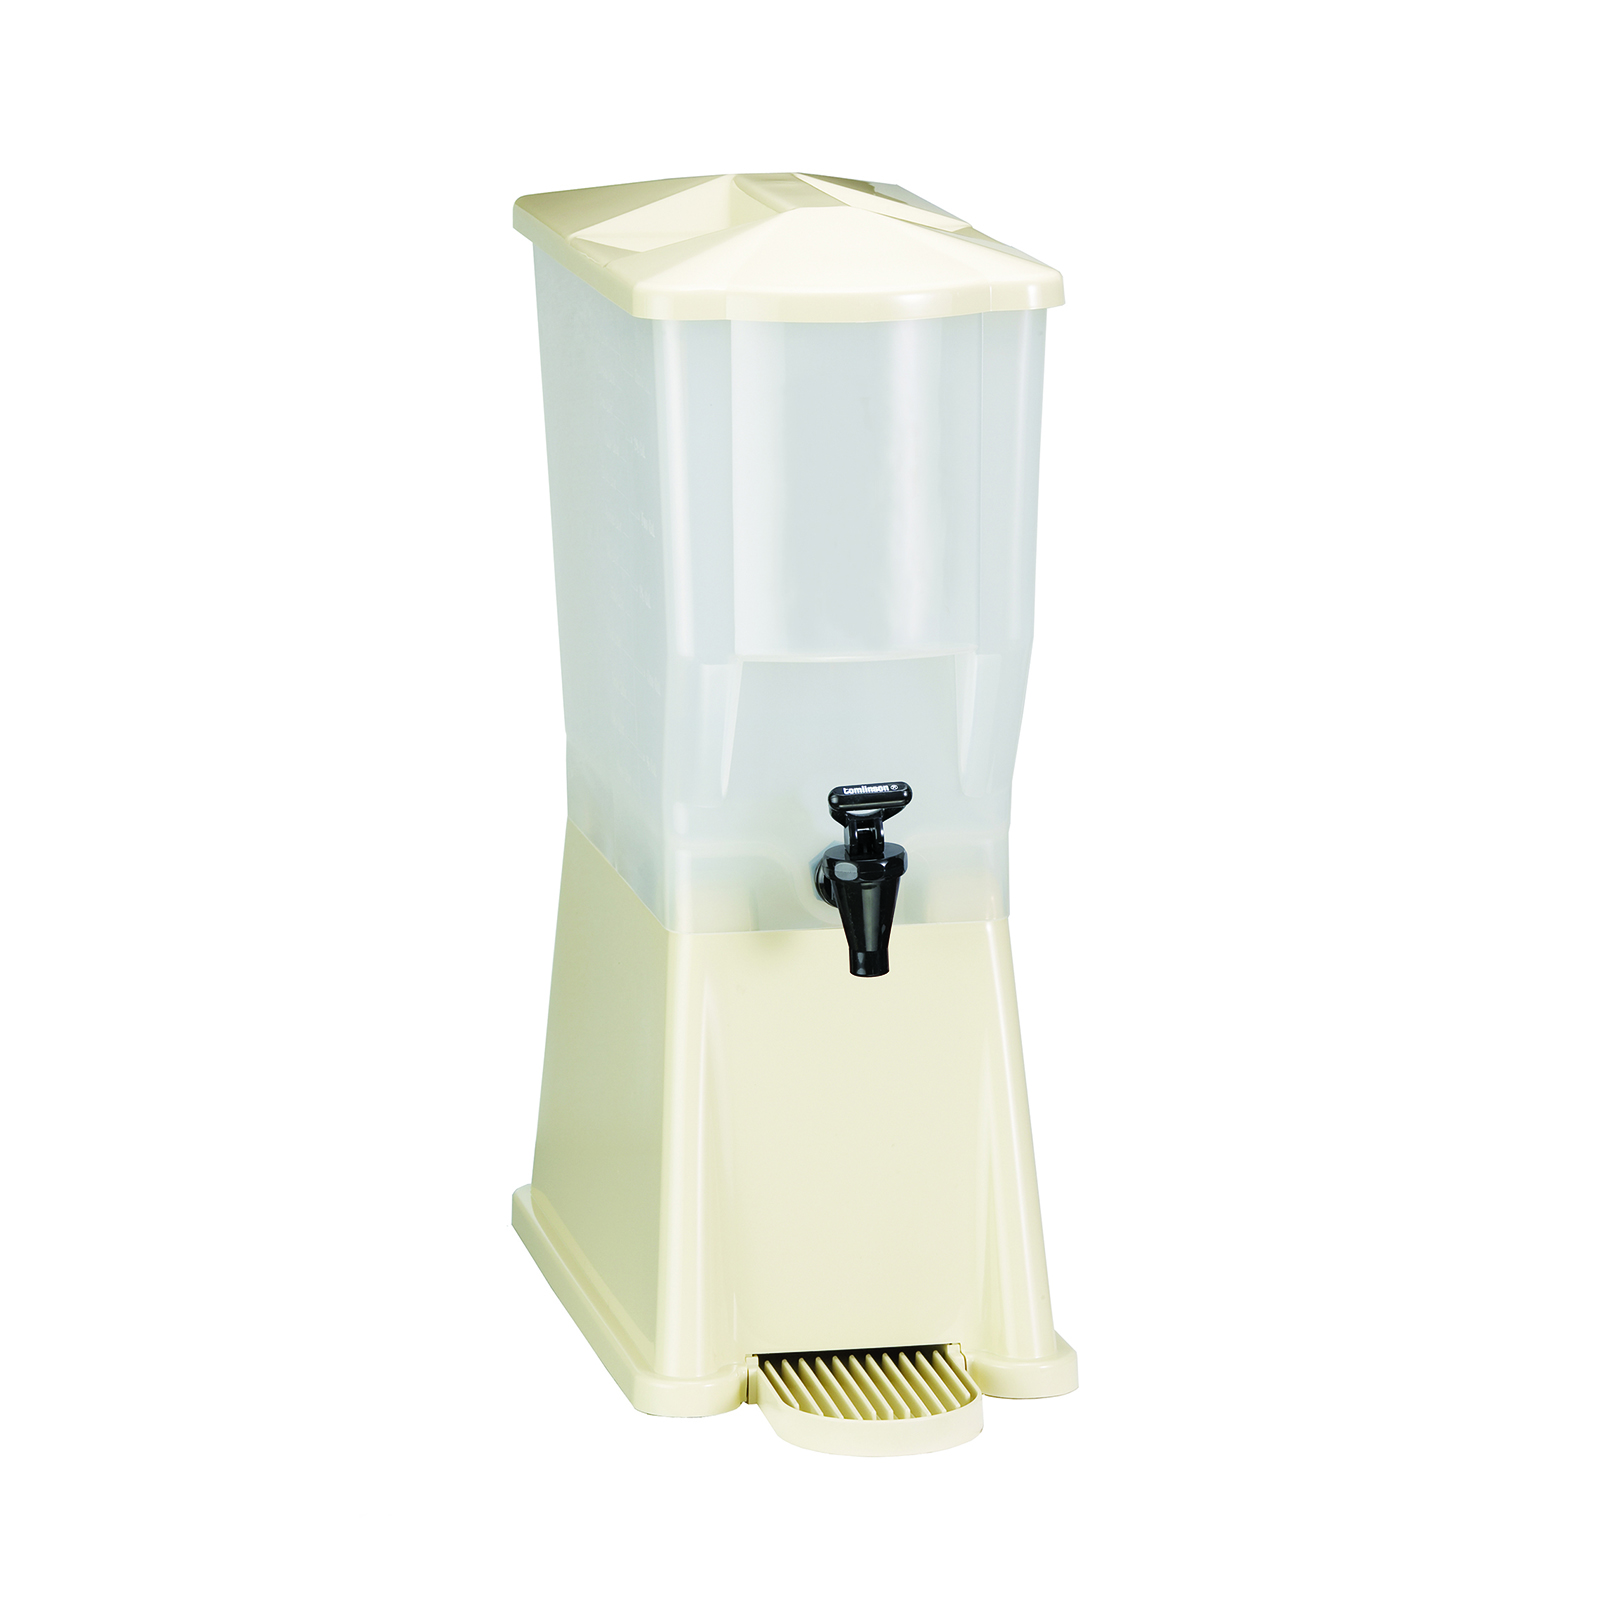 TableCraft Products 356DP beverage dispenser, non-insulated